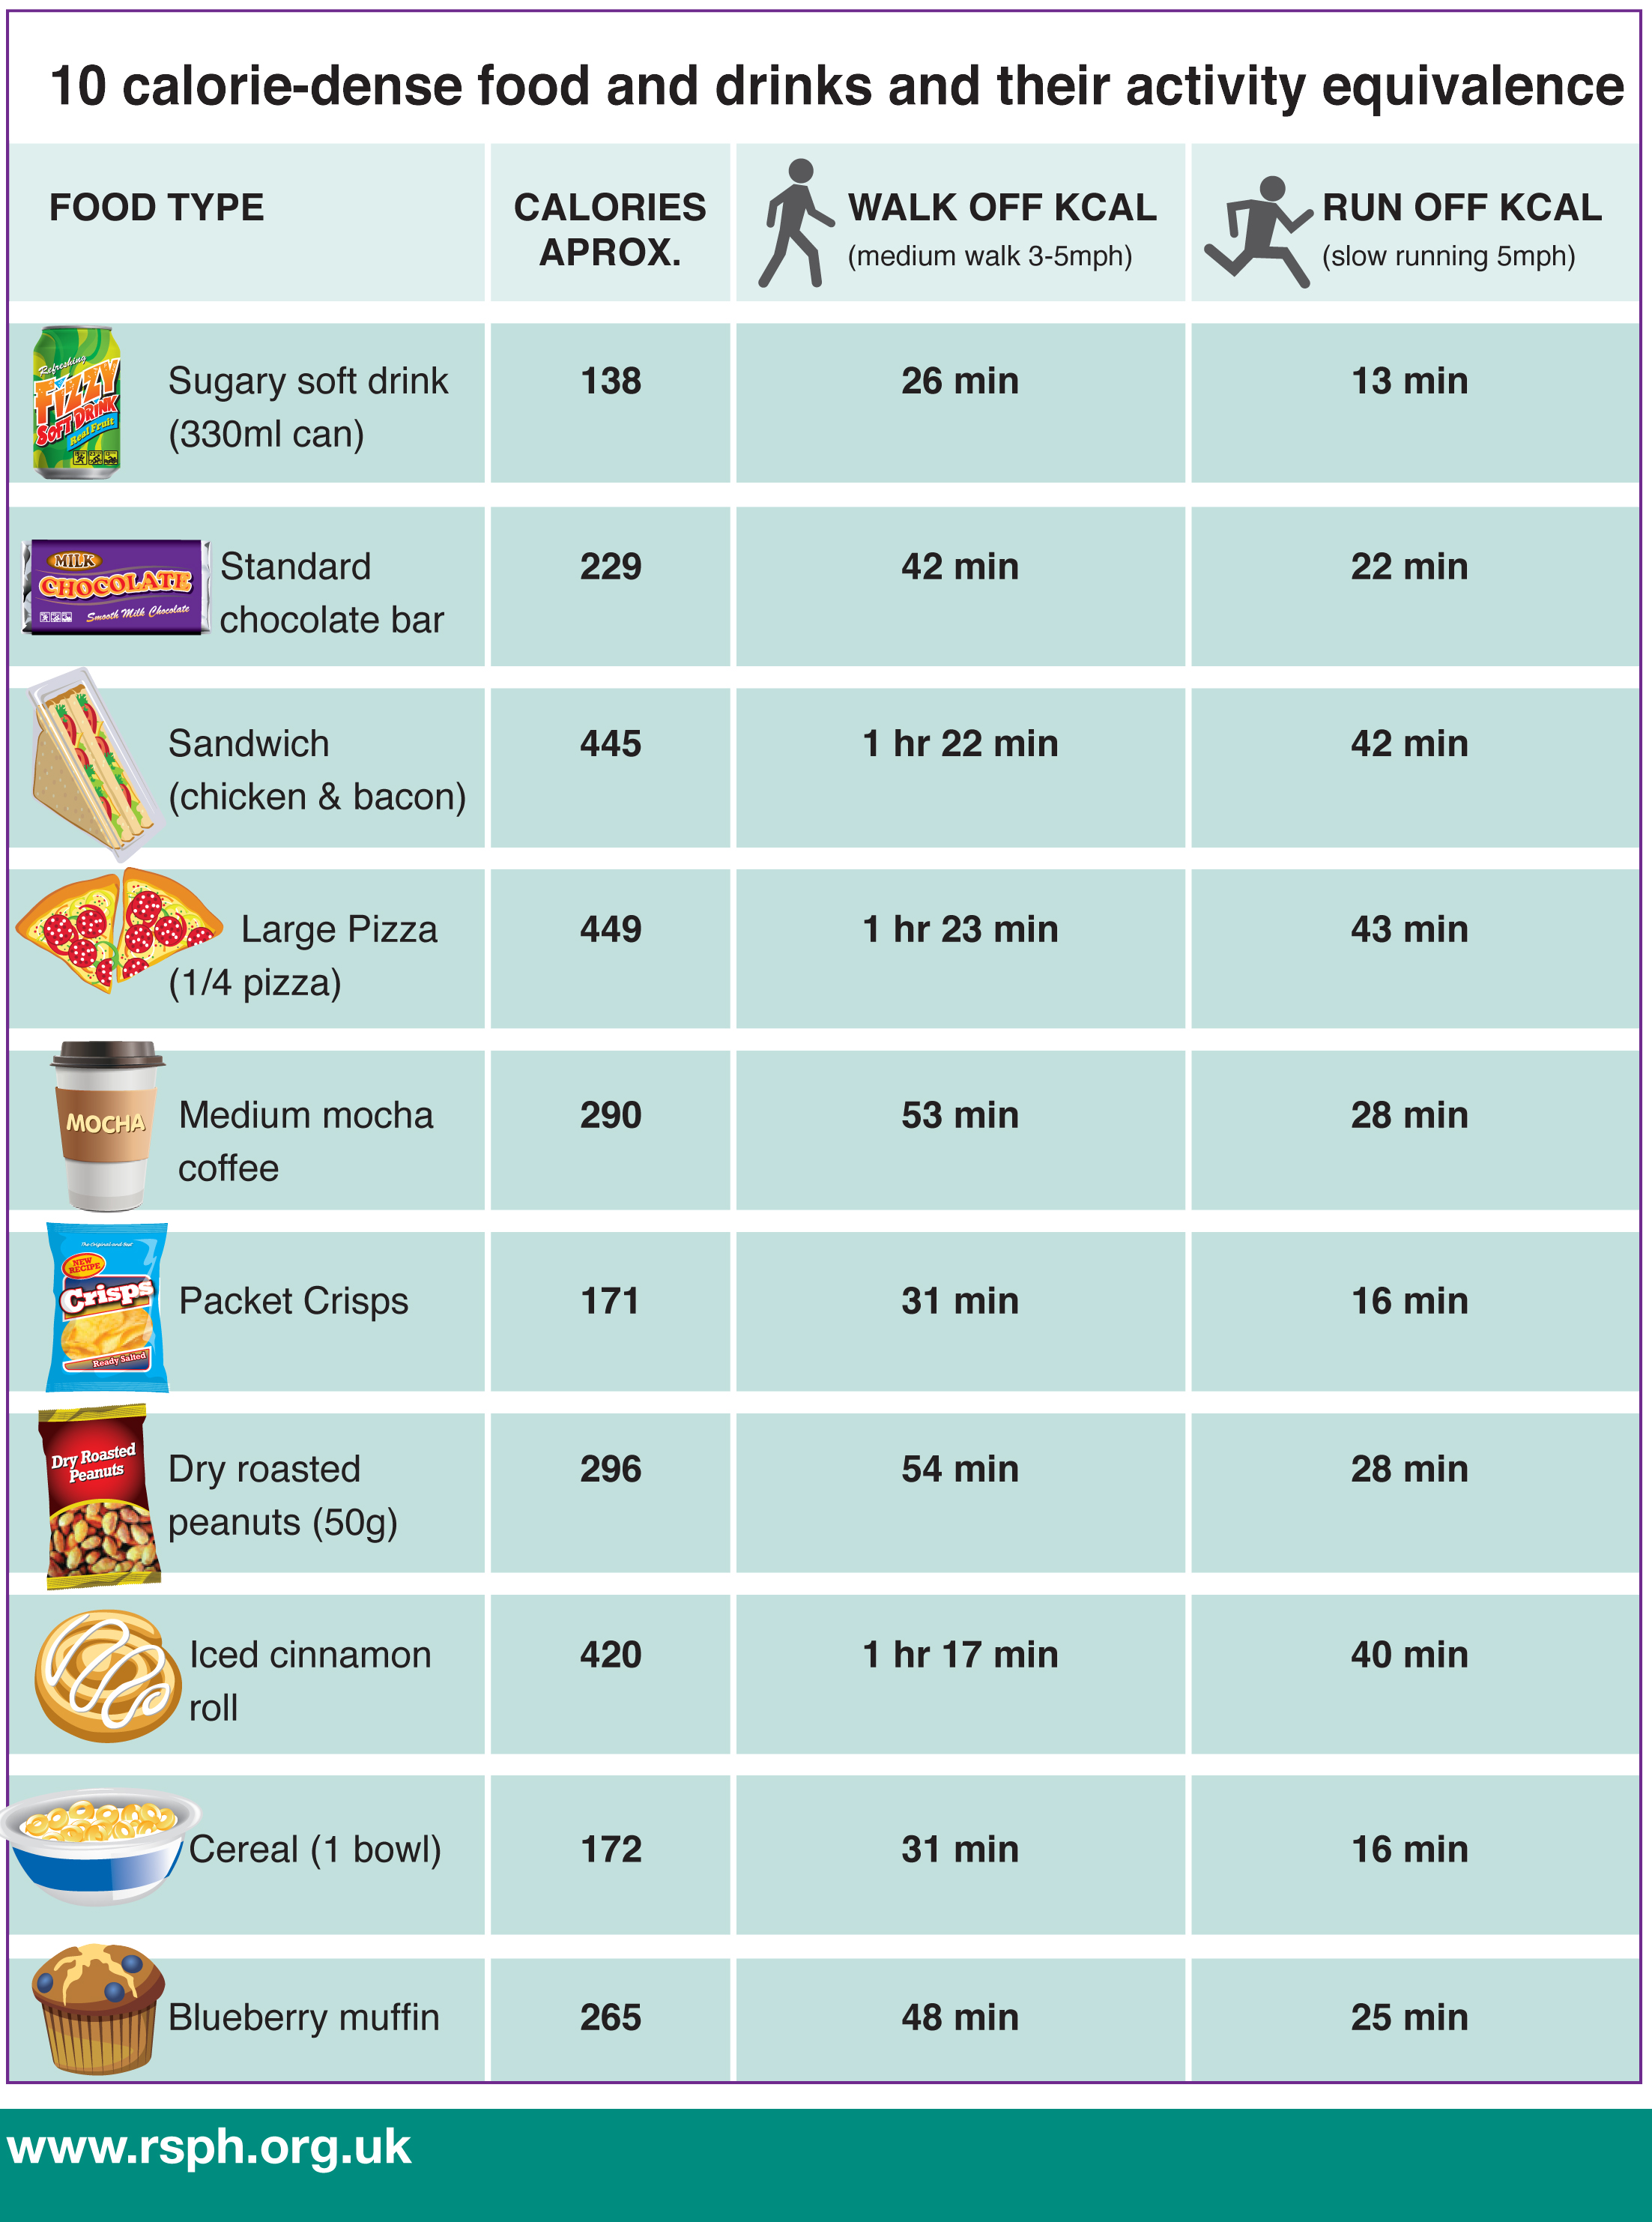 A sample food label taken from the Royal Society for Public Health study. Image via rsph.org.uk